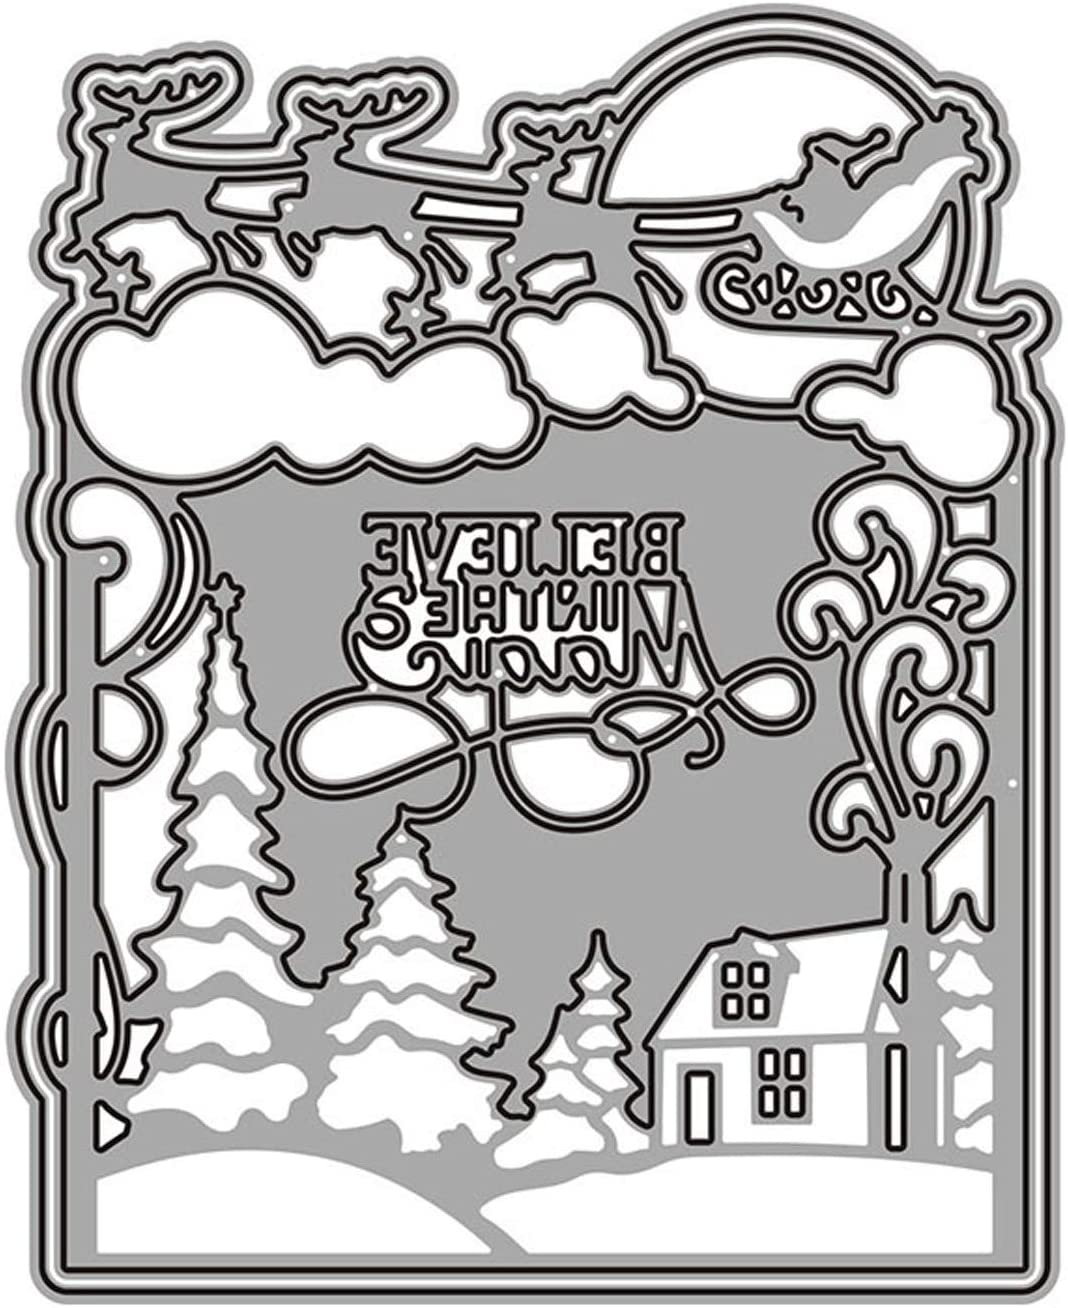 Christmas Snow Scene Metal Cutting Dies Decorative Embossing Stencil Templates for DIY Scrapbooking Album Paper Cards Crafts Christmas Gift